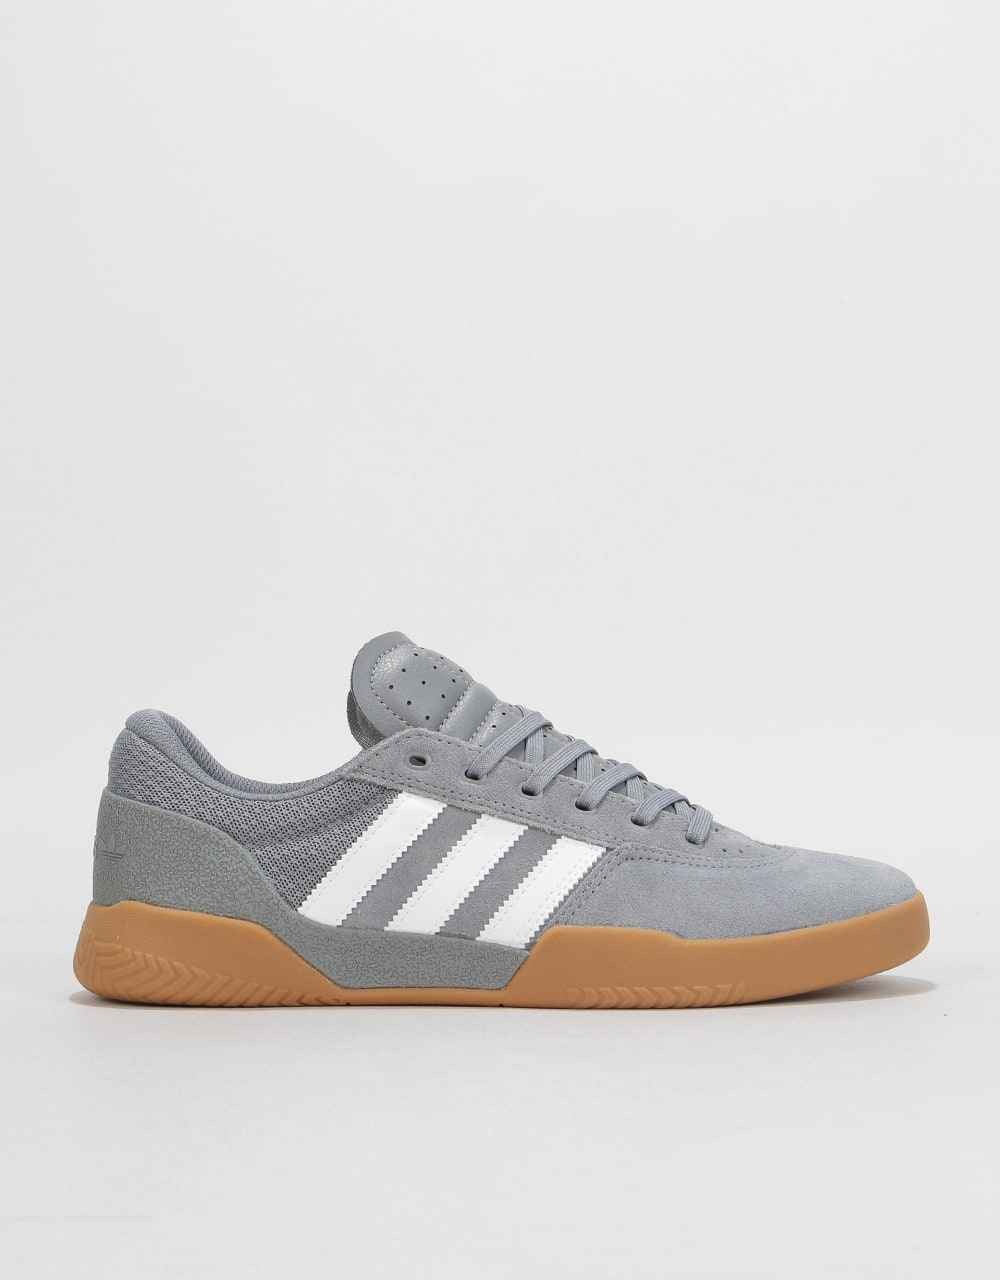 Adidas City Cup Skate Shoes - Grey White Gum  bc34c8f62